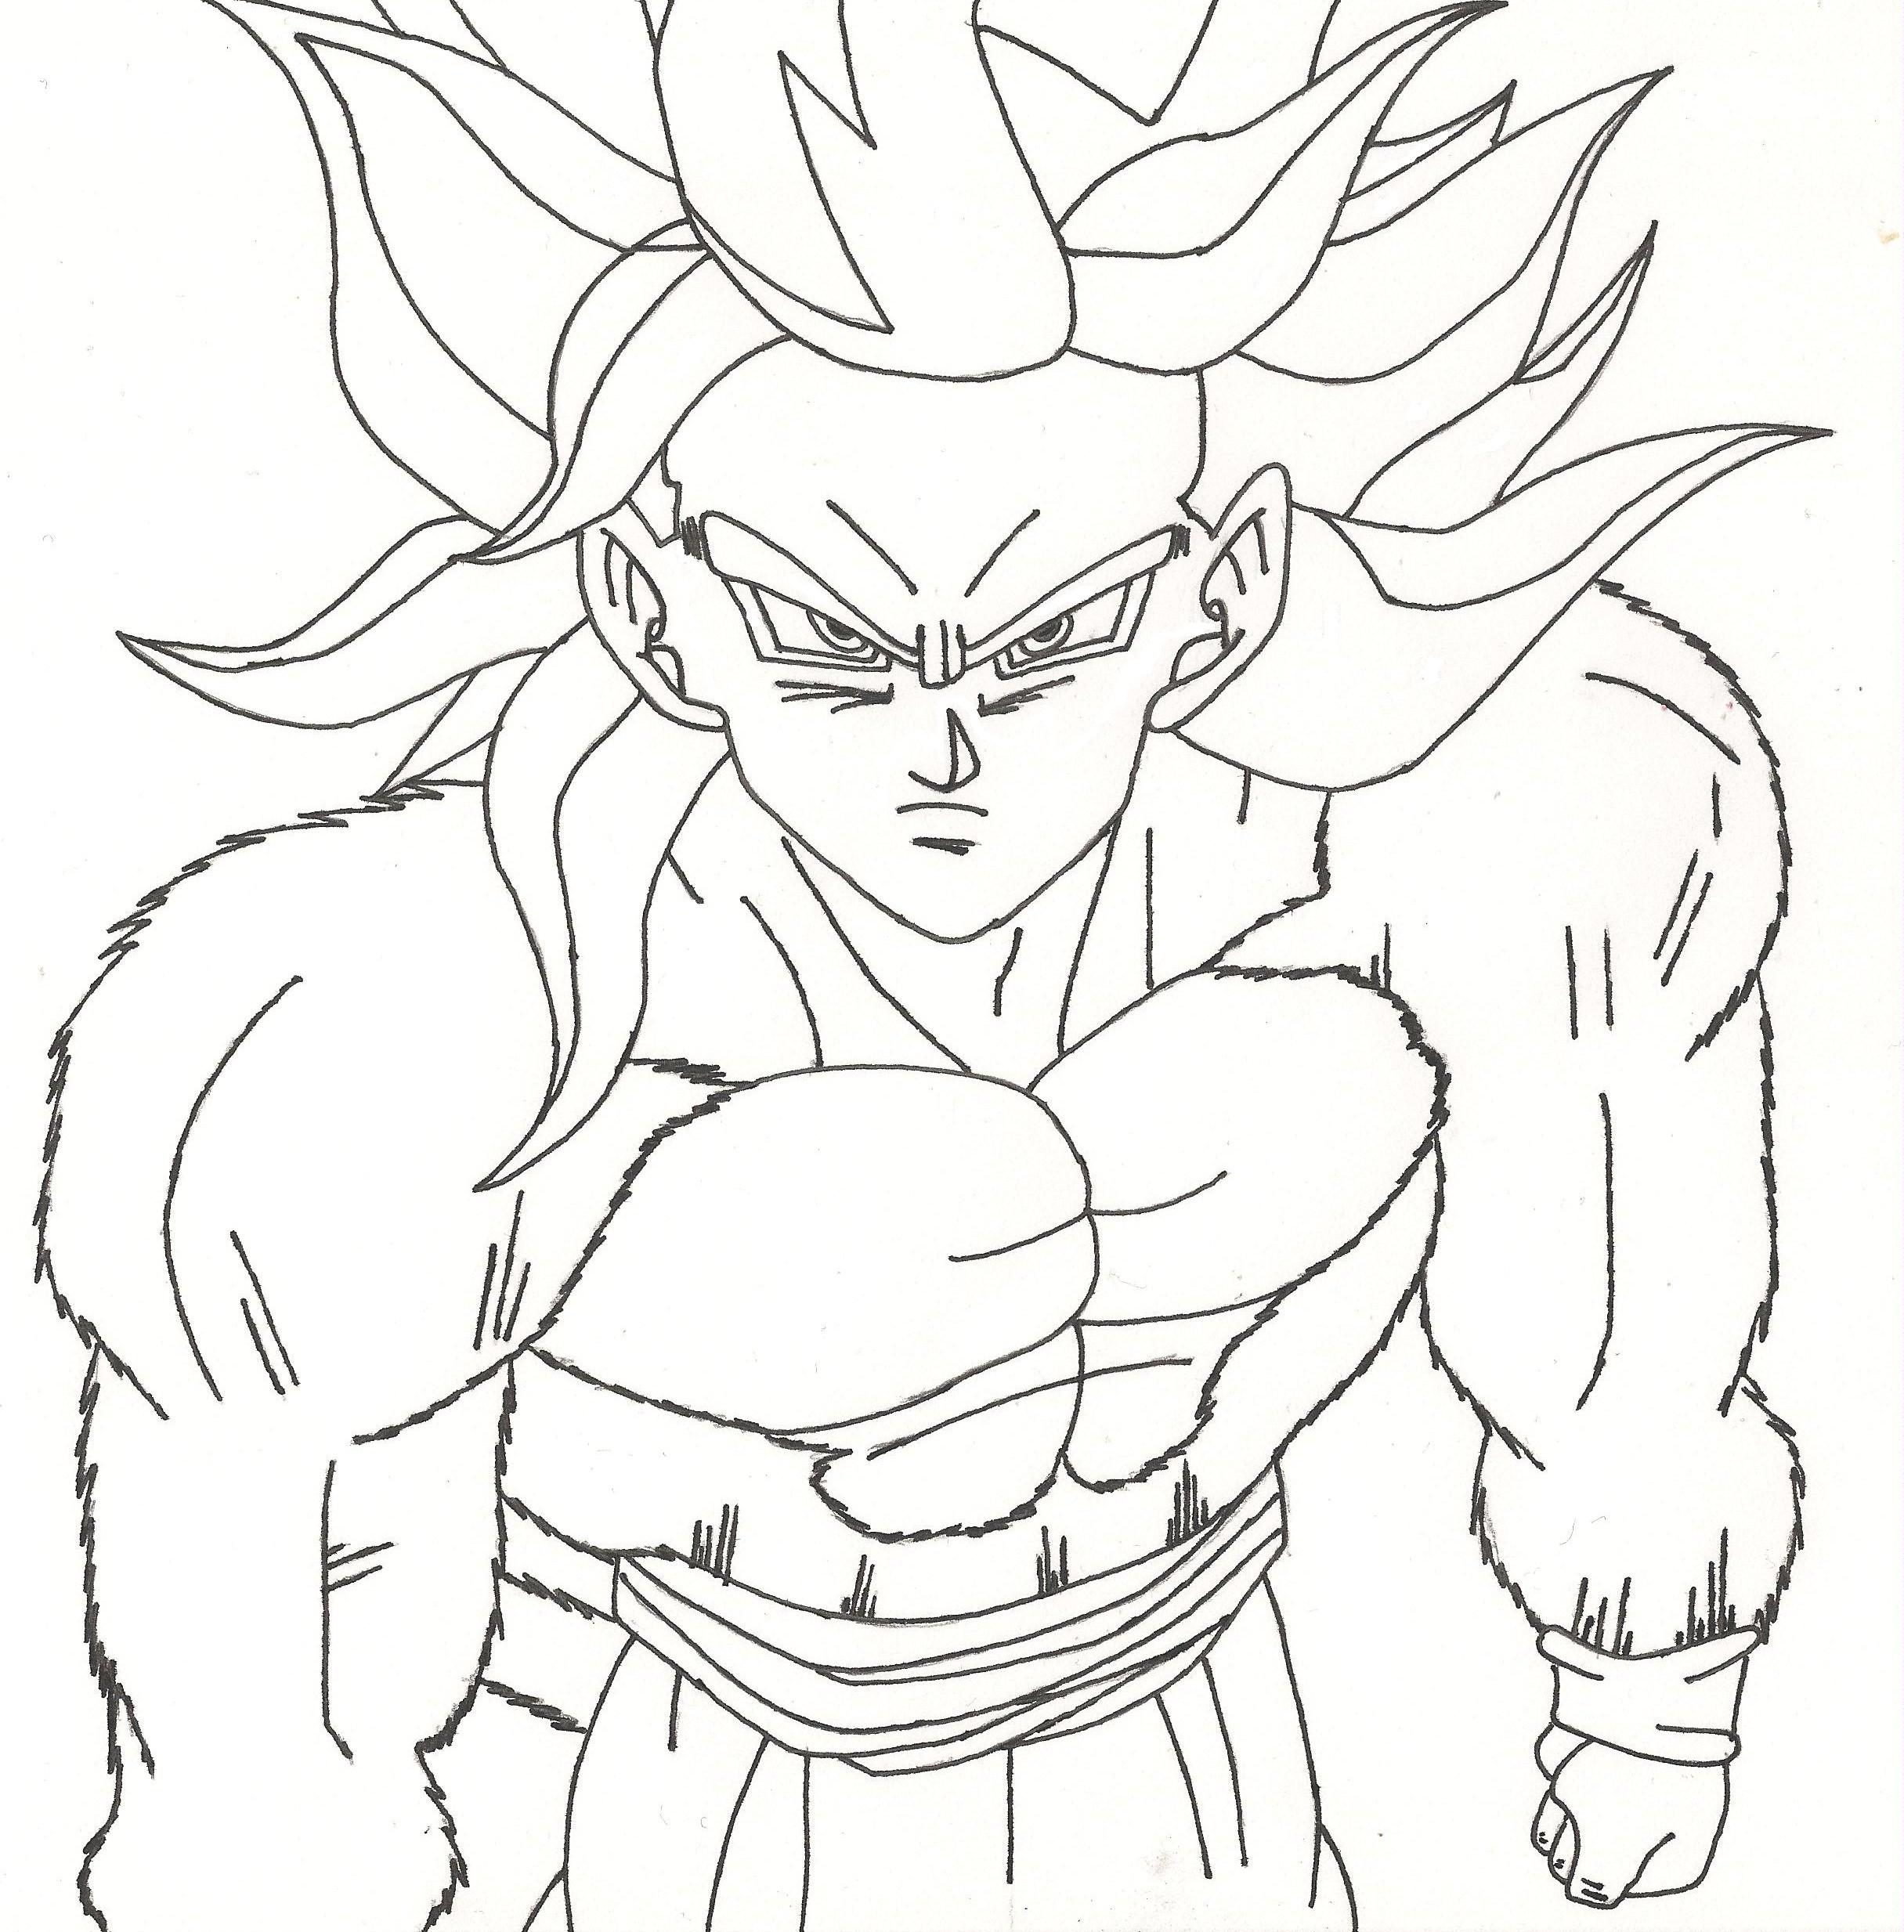 Goku Drawing Step By Step at GetDrawings.com | Free for personal use ...